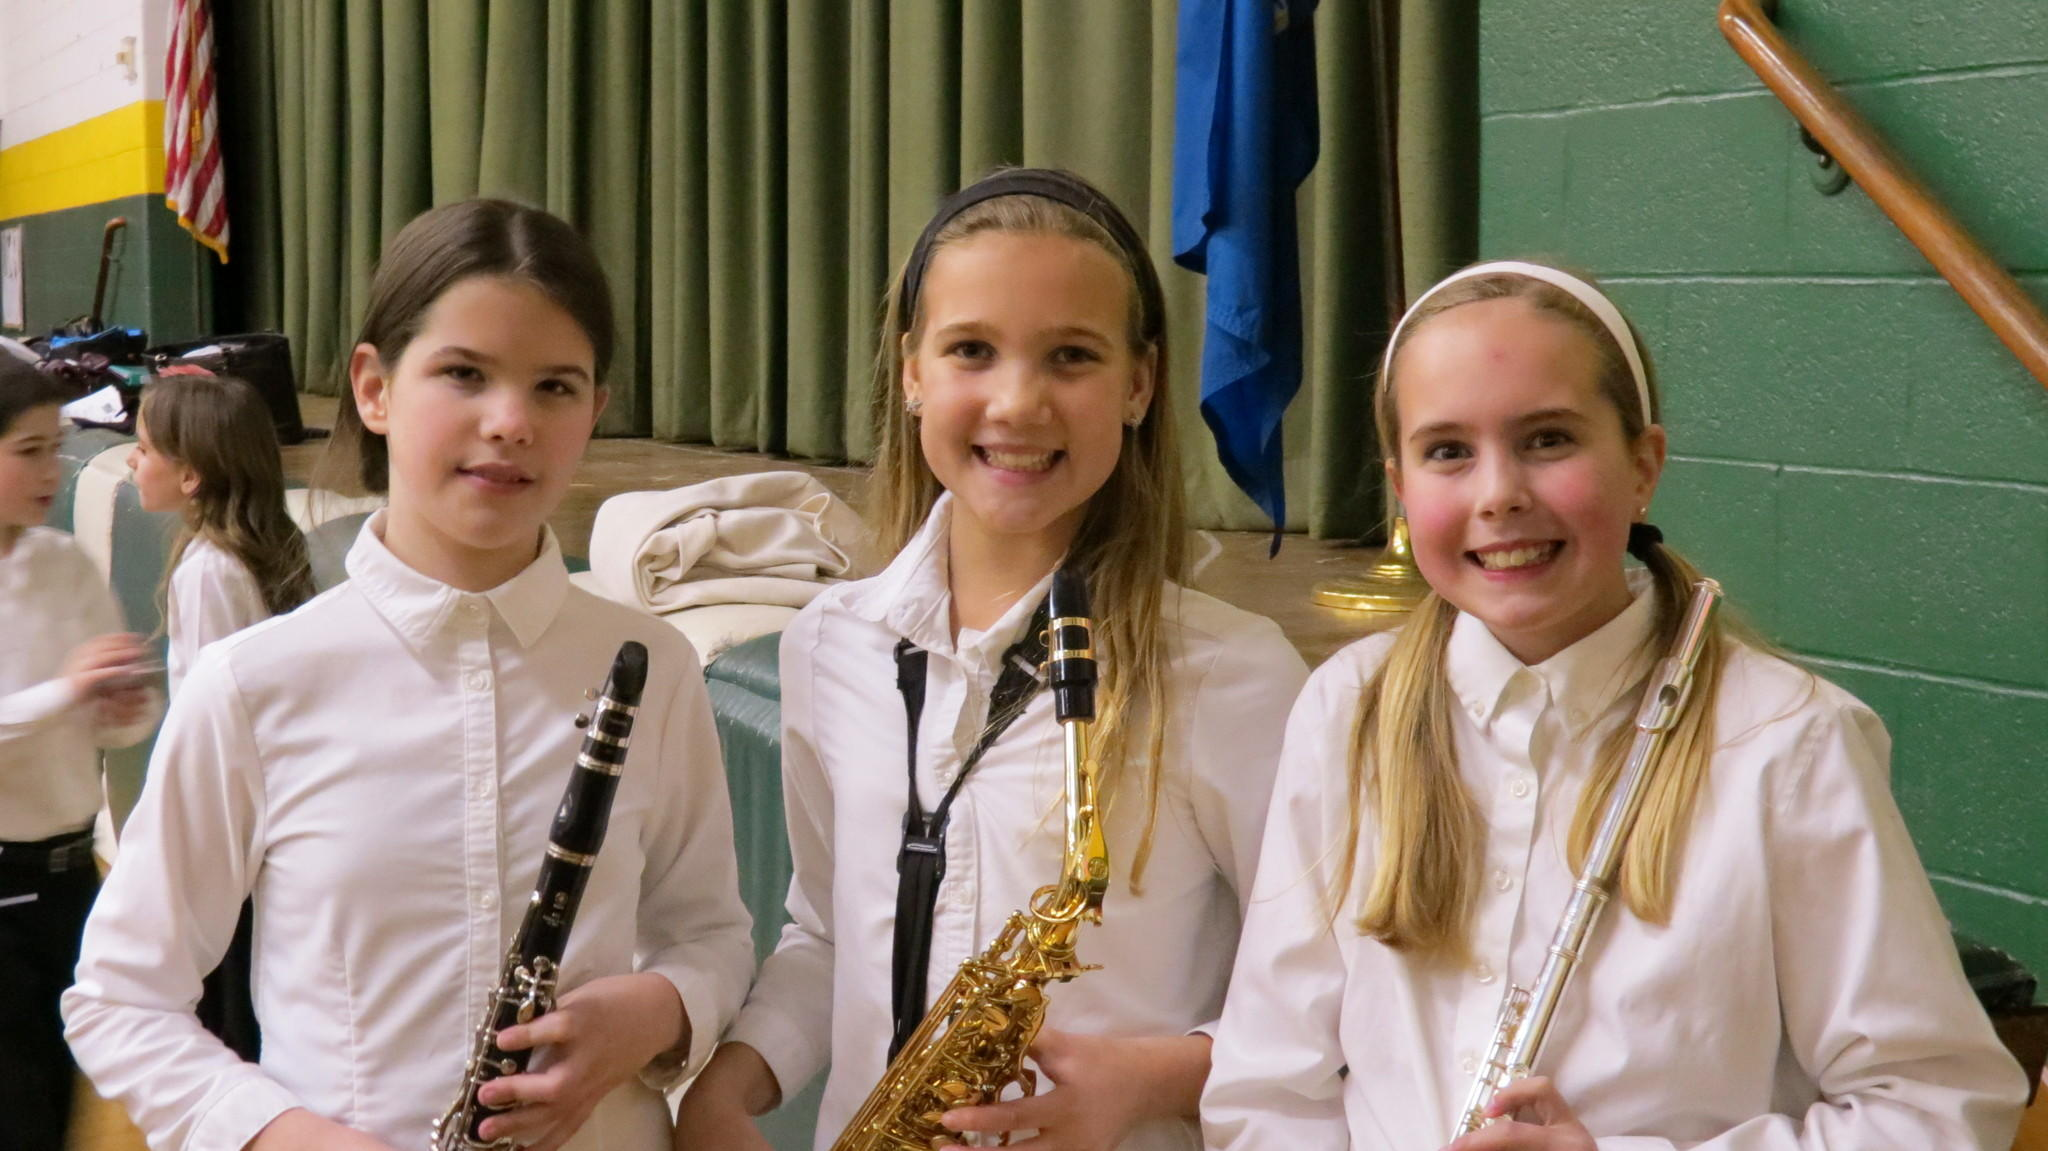 From left to right: Emily M., Audrey B., and Sophie G., all 5th grade students at Saint Mary's School in Simsbury, participated in the FMI All-State Gala Band on March 22 at Central Connecticut State University.